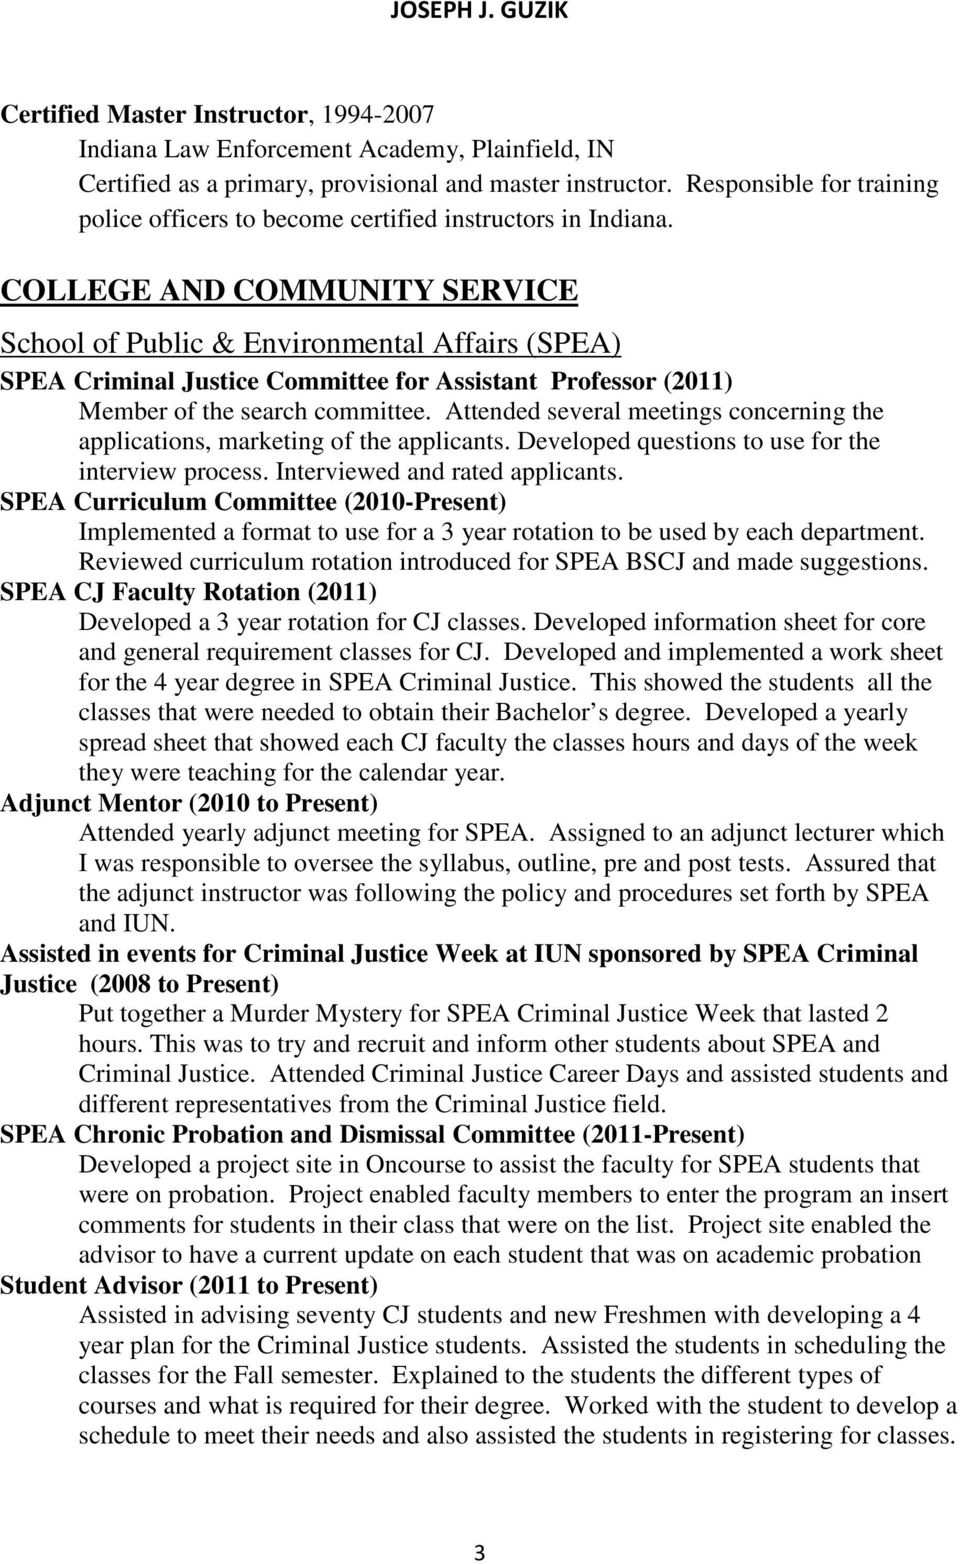 COLLEGE AND COMMUNITY SERVICE School of Public & Environmental Affairs (SPEA) SPEA Criminal Justice Committee for Assistant Professor (2011) Member of the search committee.